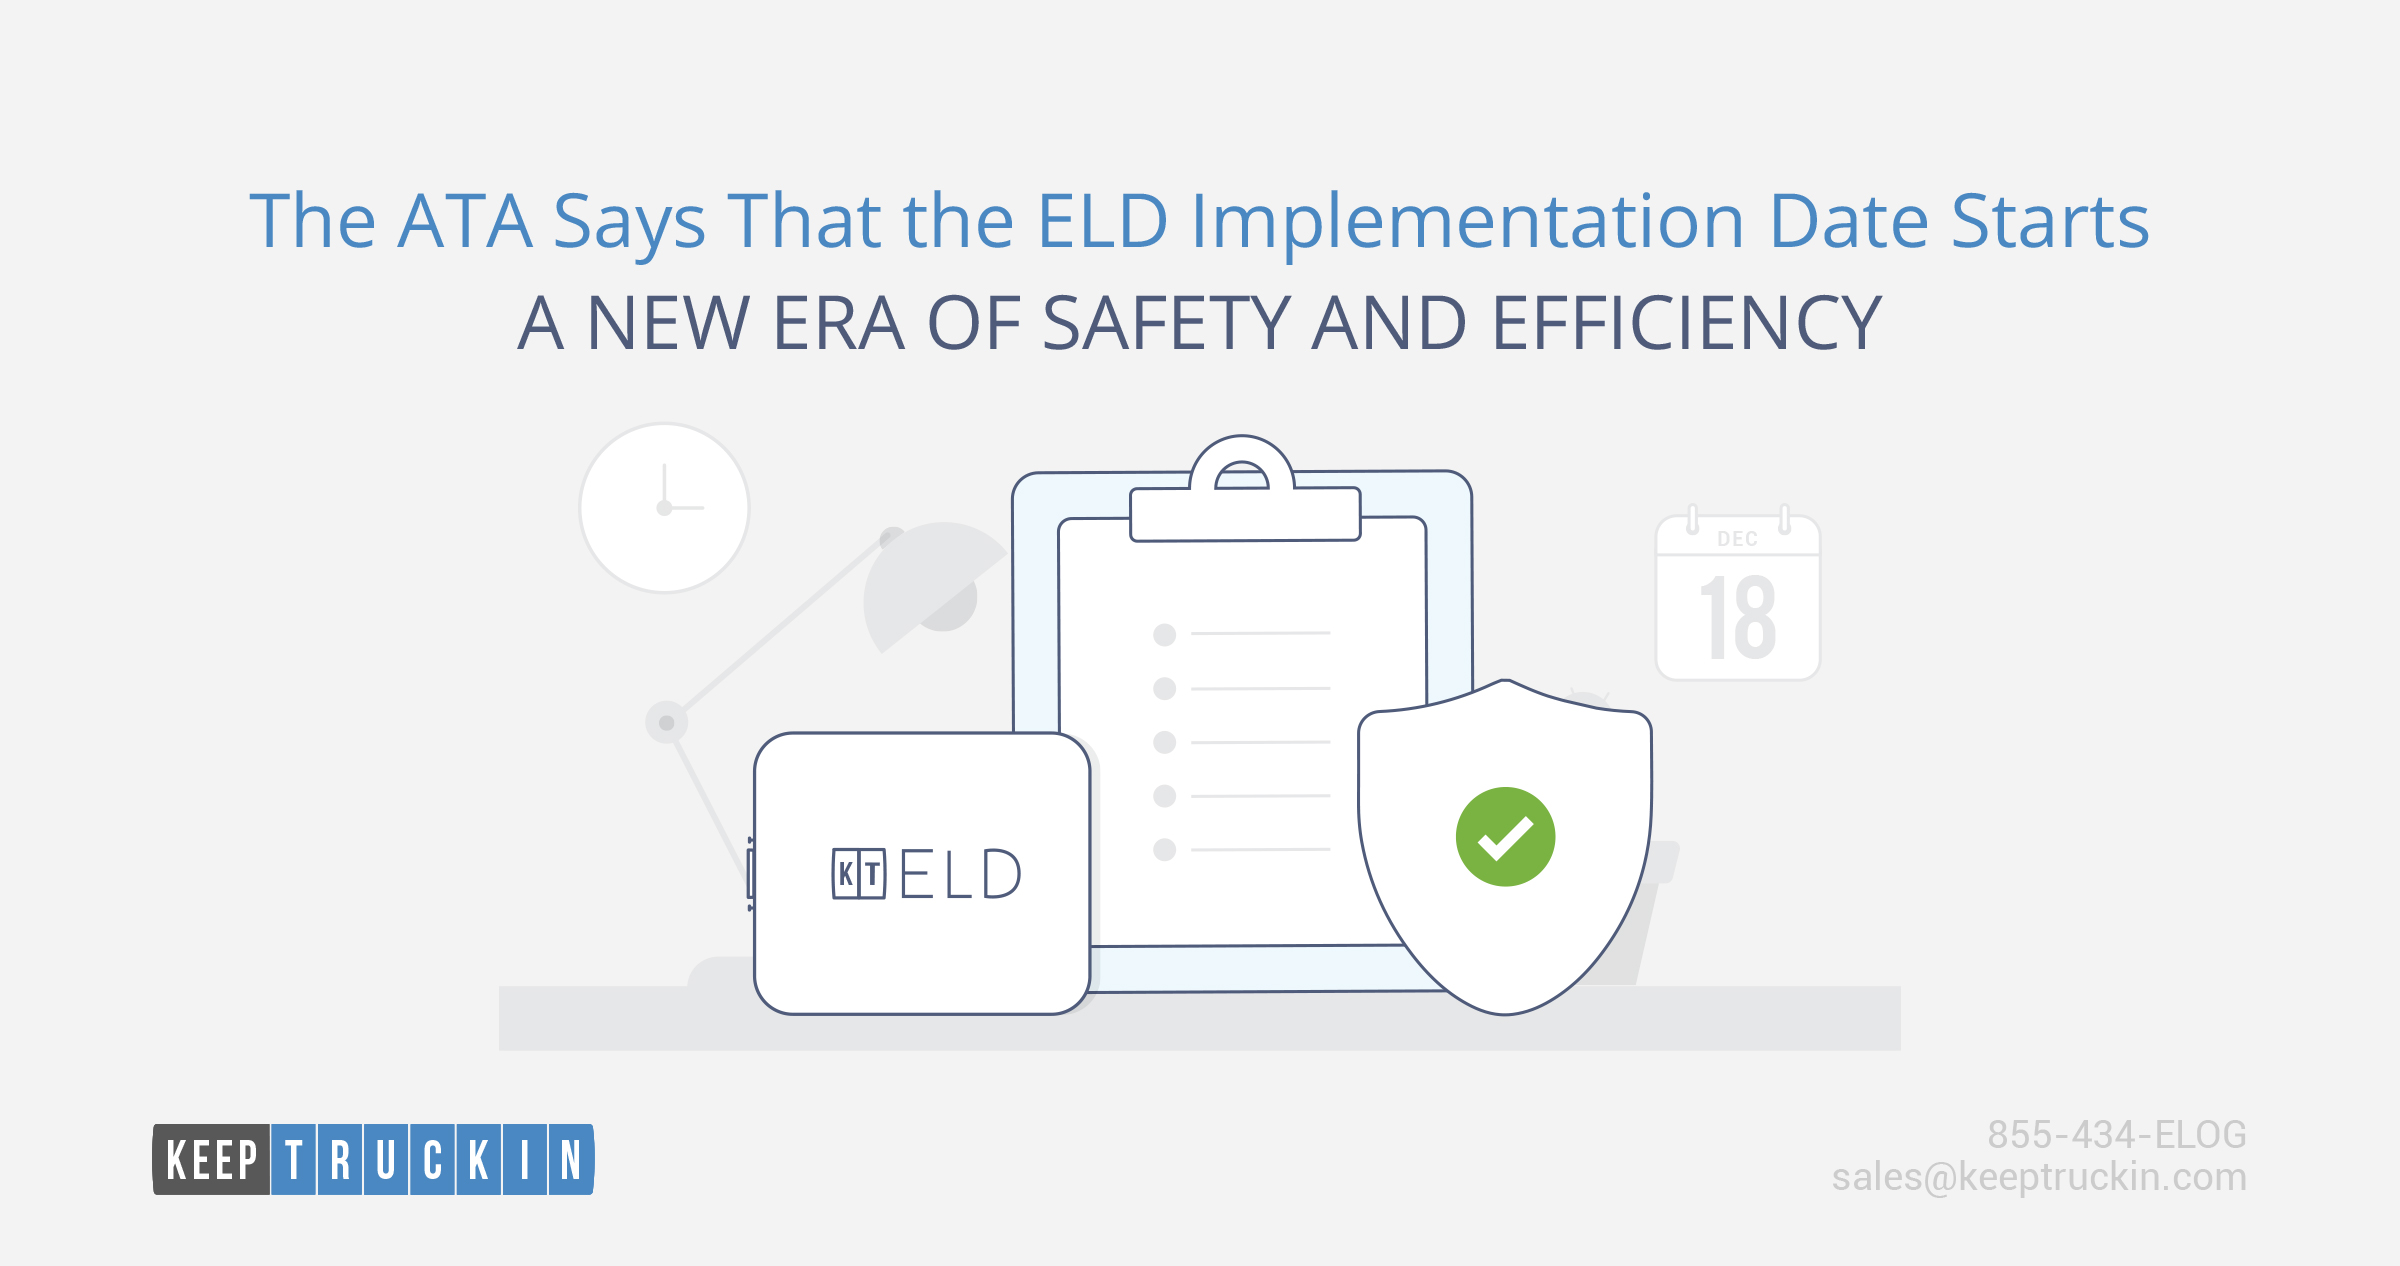 The ATA Says that the ELD Implementation Date Starts a New Era of Safety and Efficiency